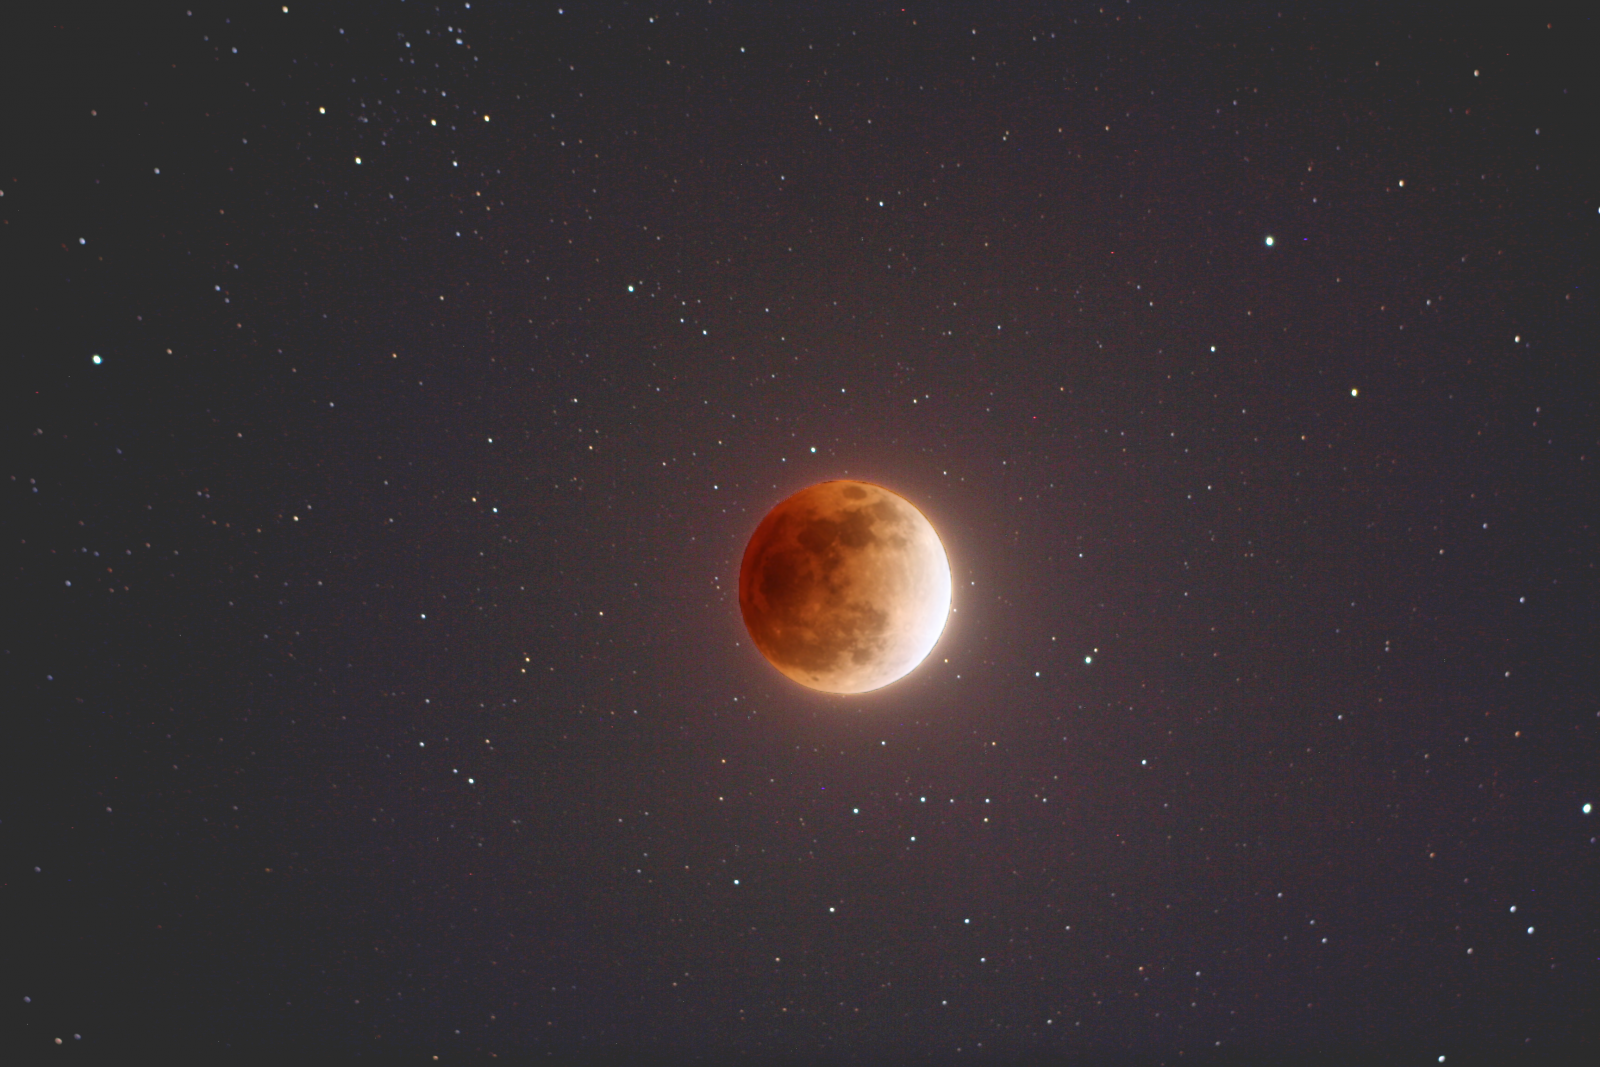 nasa live lunar eclipse - photo #1